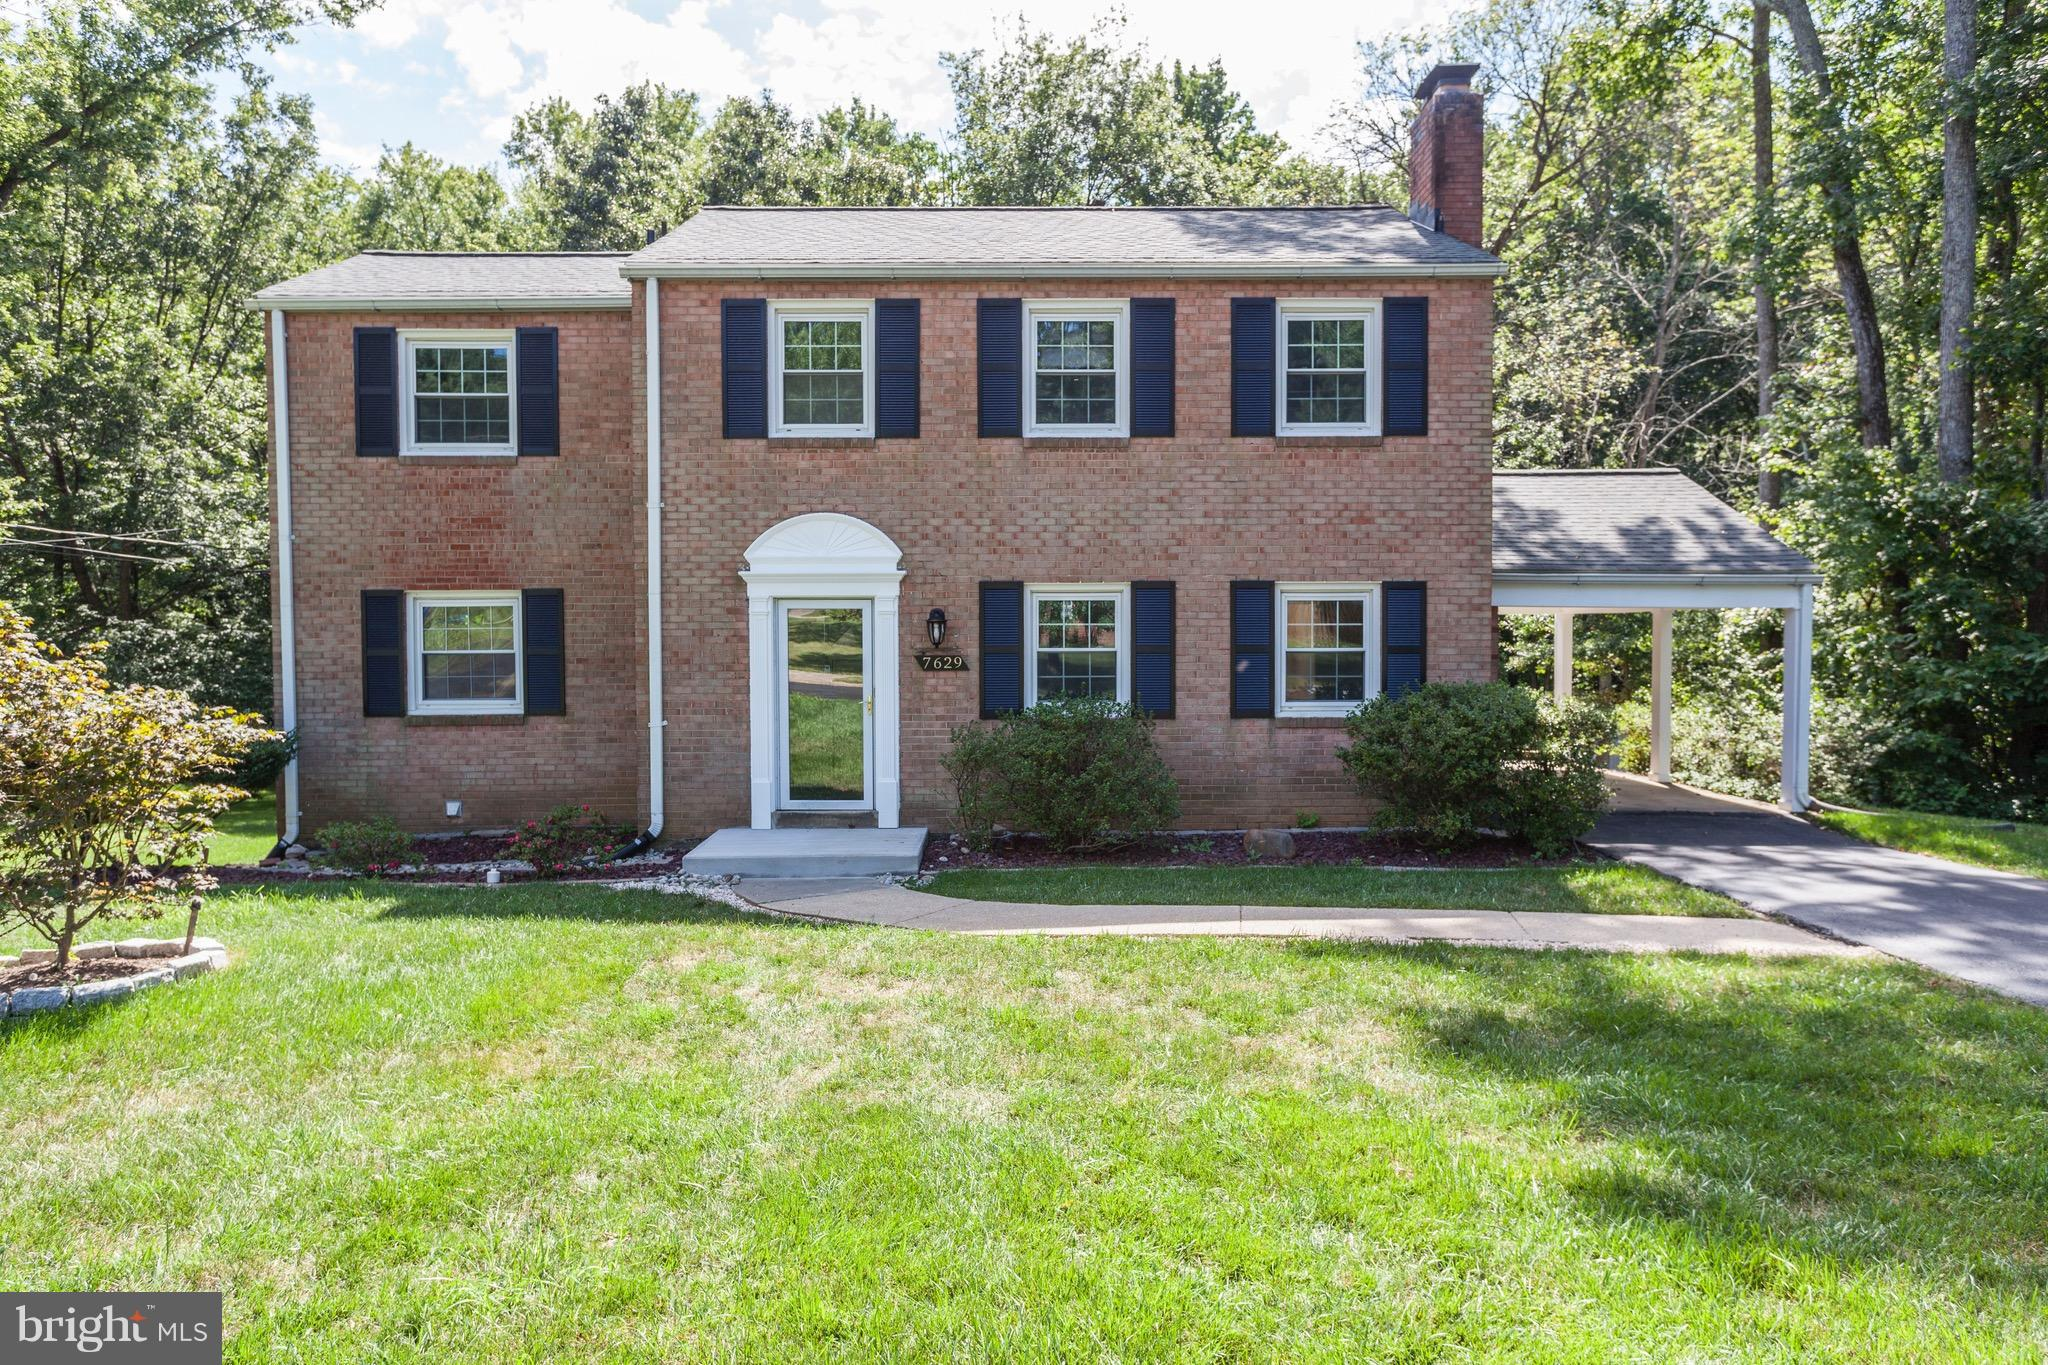 Stunning ALL brick 4BR, 2full and 2BA home in Springfield! Amazing lot surrounded by trees & backs to parkland w/ walking trails to Lake Accotink. Updated baths & unique opened main level. Beautiful granite in KIT. Main lvl & BRs w/ HW floors. Walkout lvl rec rm w/ FP & recessed light.  Mins to 395, 495 & 95. Must see!